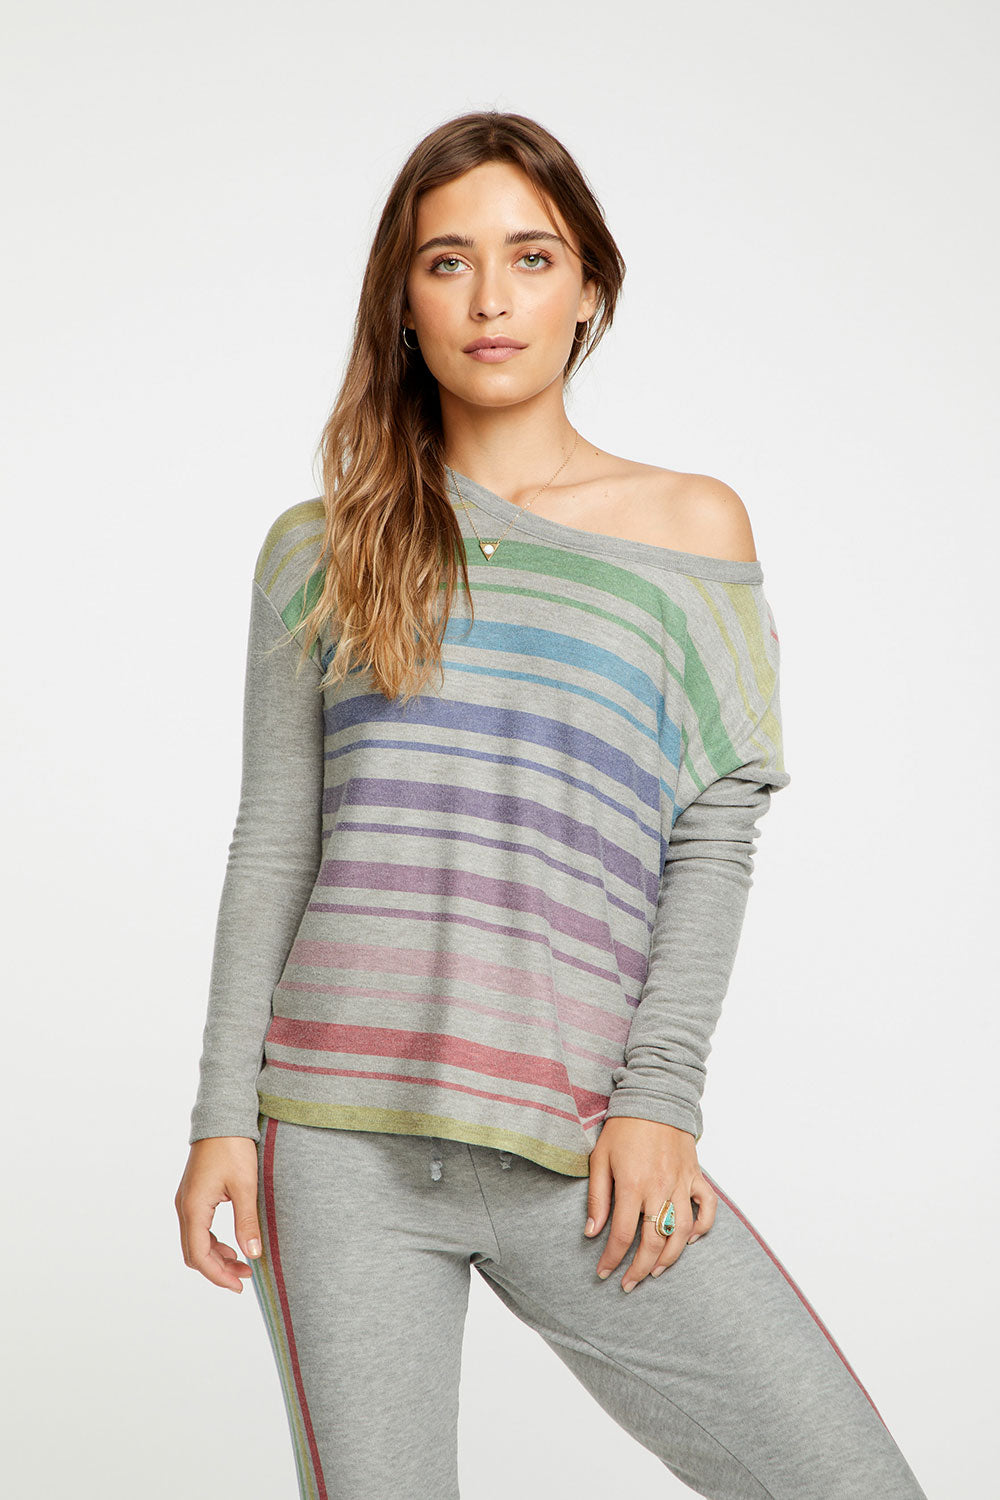 Rainbow Stripes, WOMENS, chaserbrand.com,chaser clothing,chaser apparel,chaser los angeles